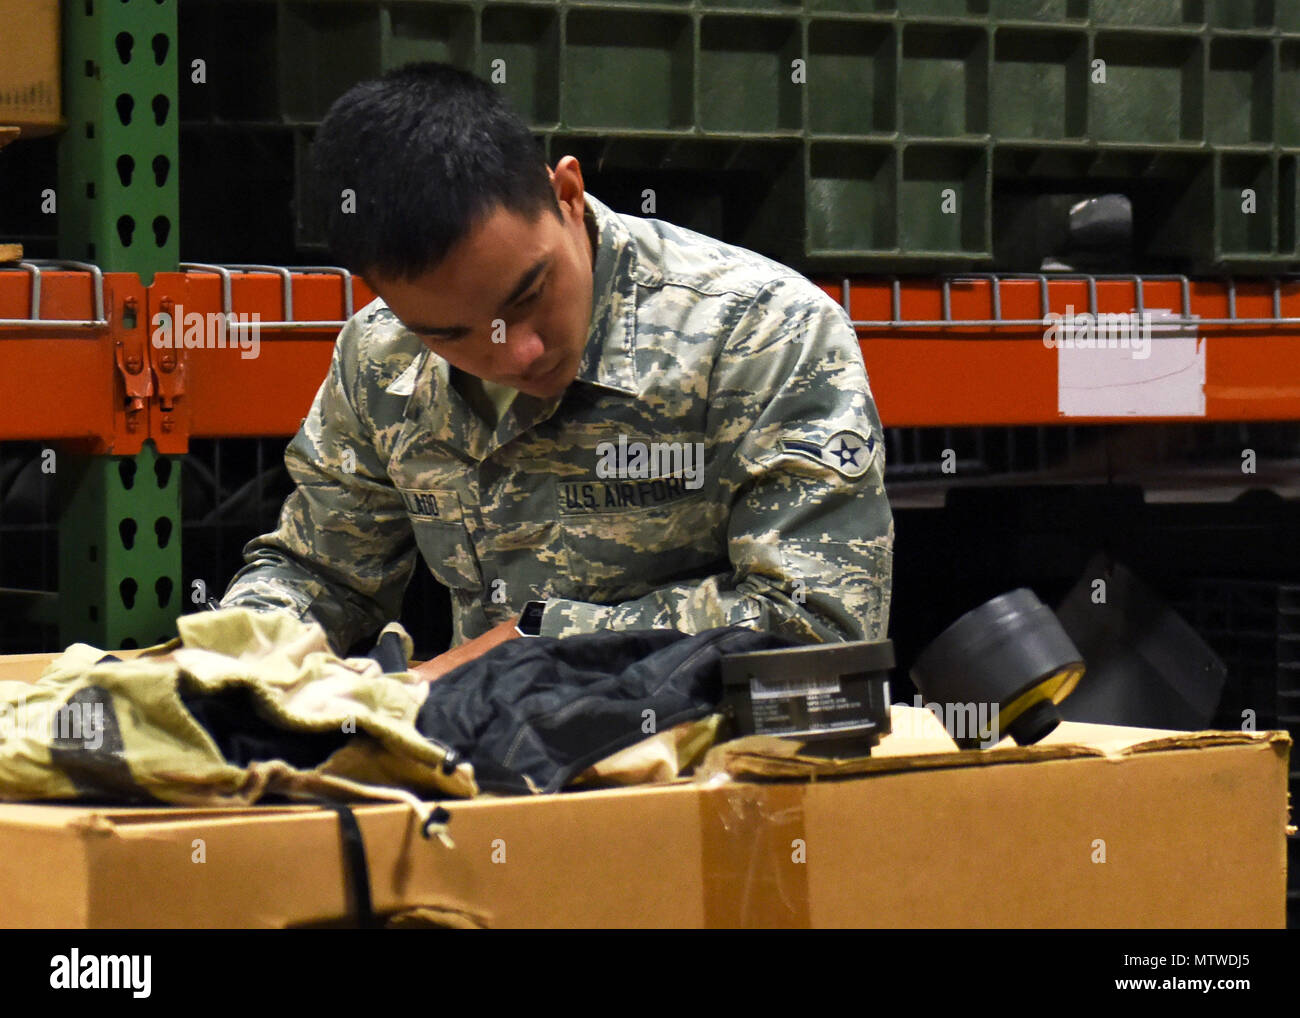 U.S. Air Force Airman Joerimer Collado, an individual protective equipment (IPE) specialist assigned to the 509th Logistics Readiness Squadron (LRS), creates an inventory list for disposition items at Whiteman Air Force Base, Mo., Jan. 17, 2017. When items are no longer needed in the IPE shop they are put into crates to be transferred to another facility. (U.S. Air Force photo by Senior Airman Danielle Quilla) - Stock Image